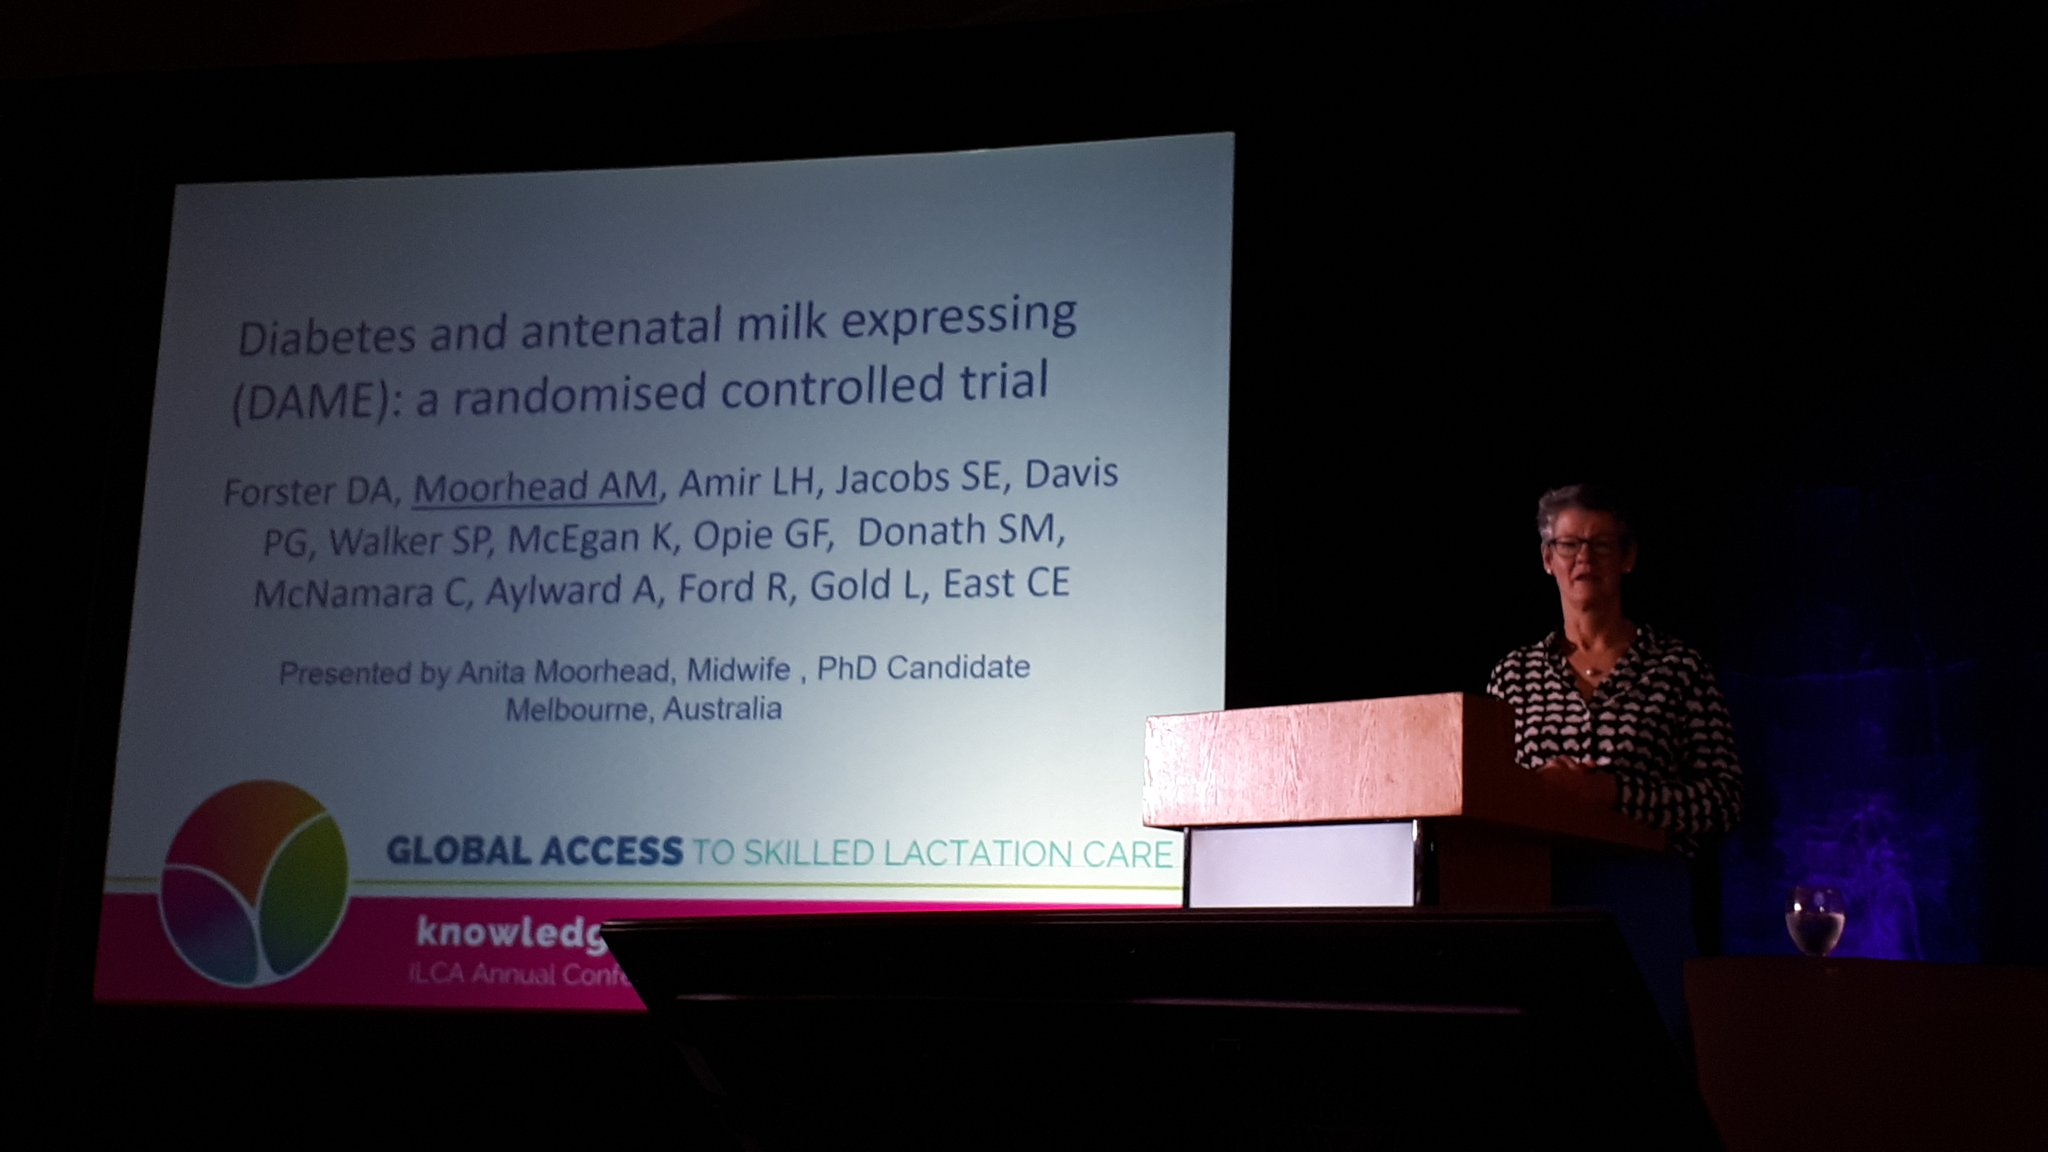 #ILCA17 Anita Moorhead speaks on the DAME trial (Diabetes and antenatal milk expression) -stay tuned for implications for IBCLC practice https://t.co/DaeYlhUQIC